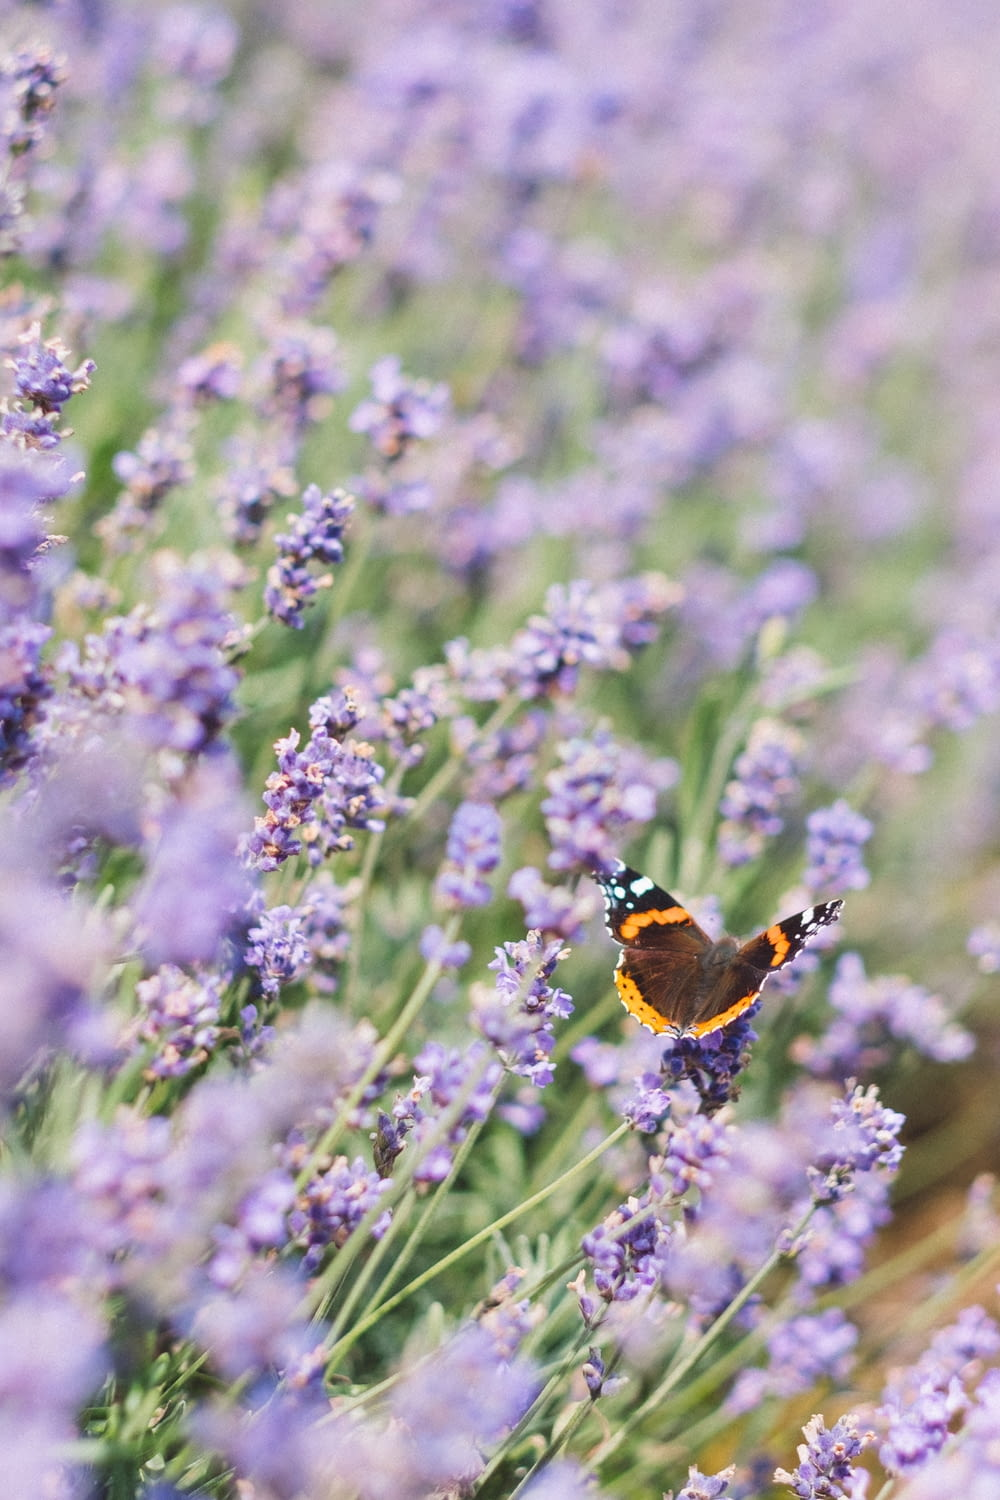 brown, black, and white butterfly on purple petaled flower photo